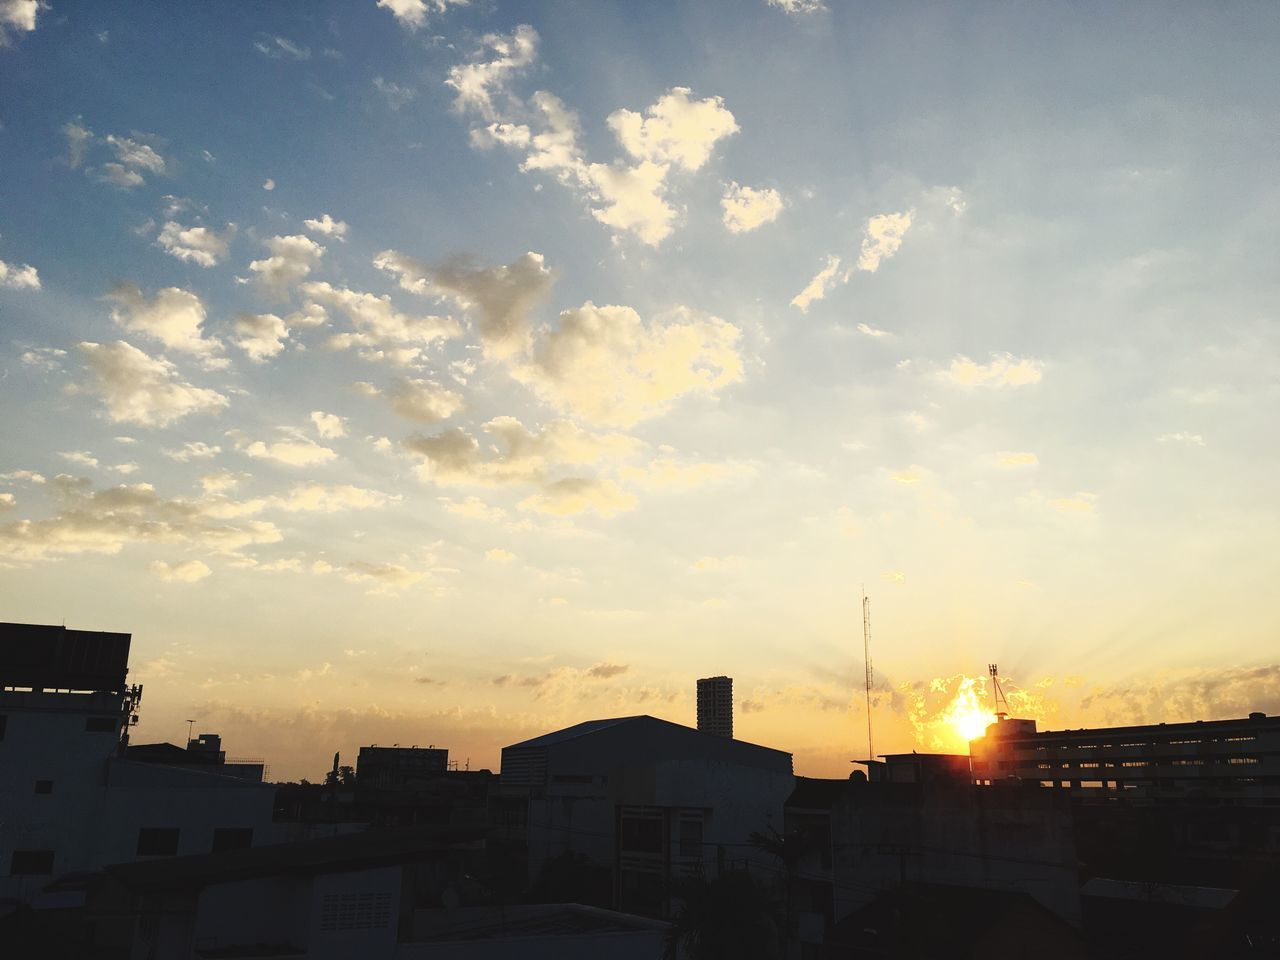 building exterior, architecture, built structure, sunset, sky, cloud - sky, city, no people, outdoors, cityscape, day